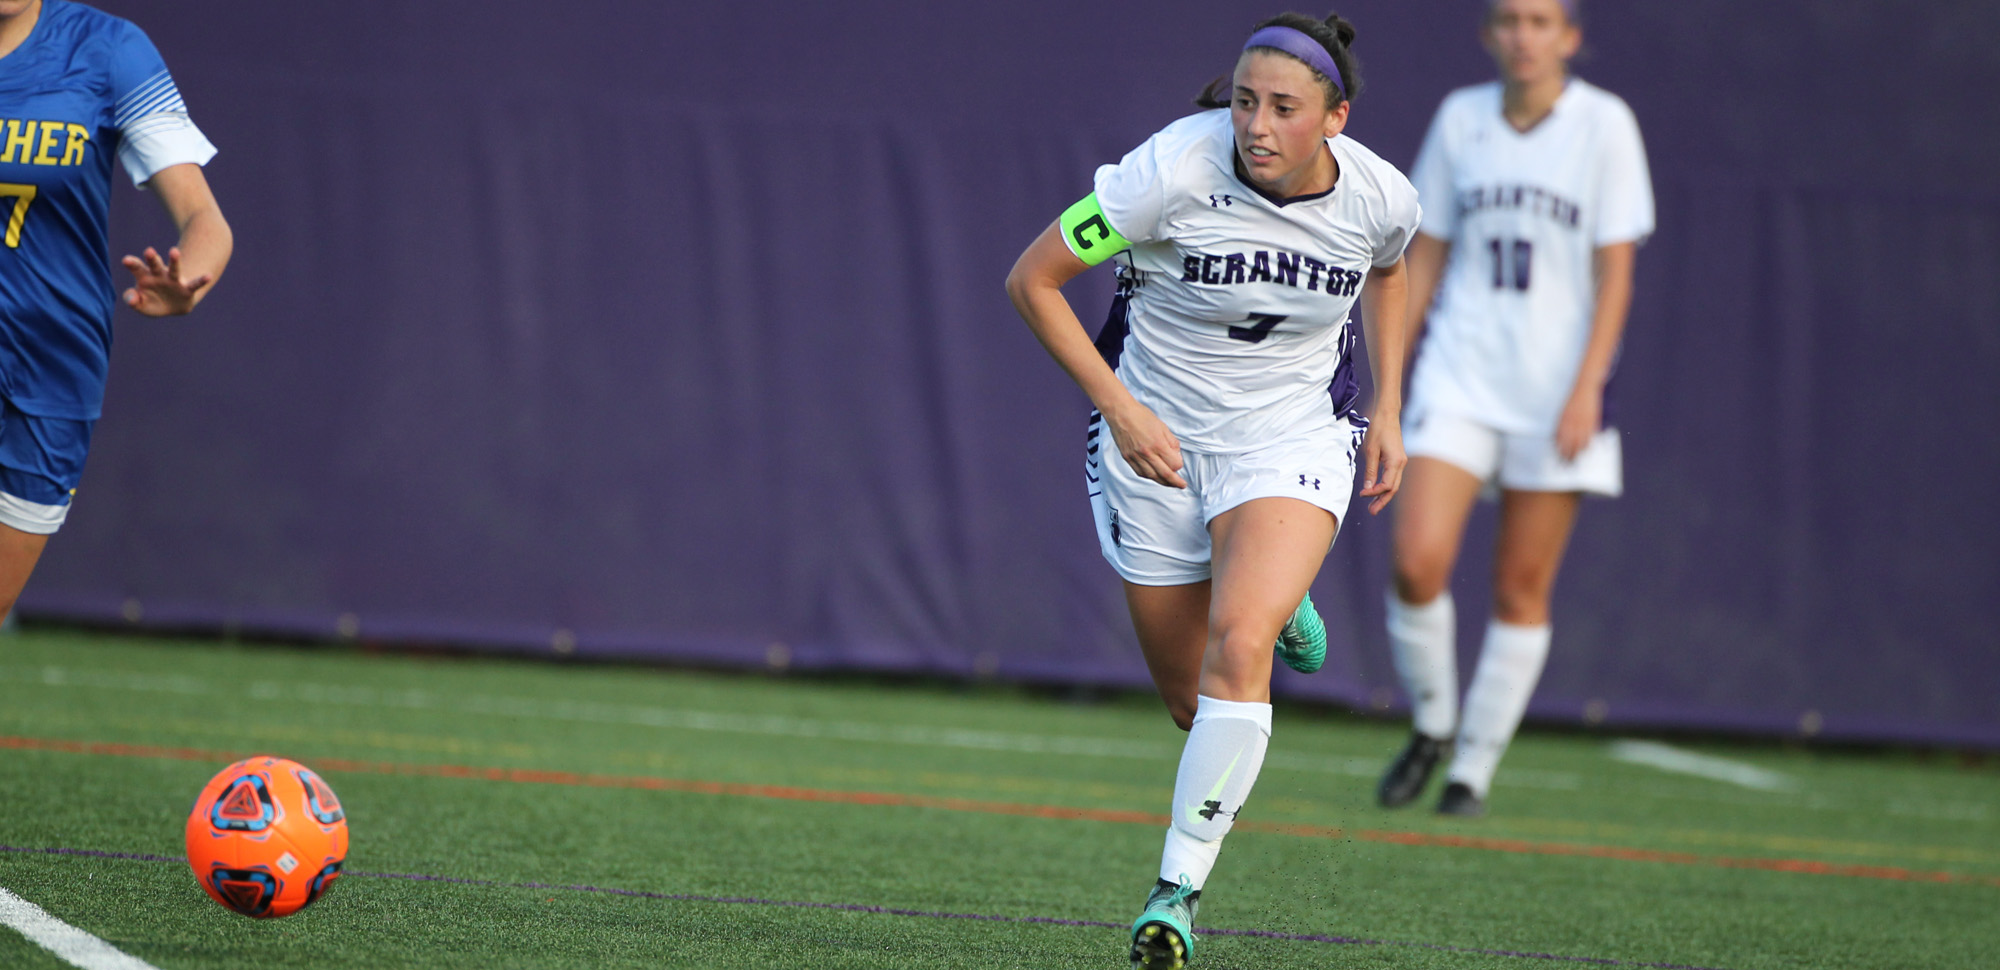 Senior Erica Licari scored her 19th career goal in Saturday's 1-0 win over Goucher.